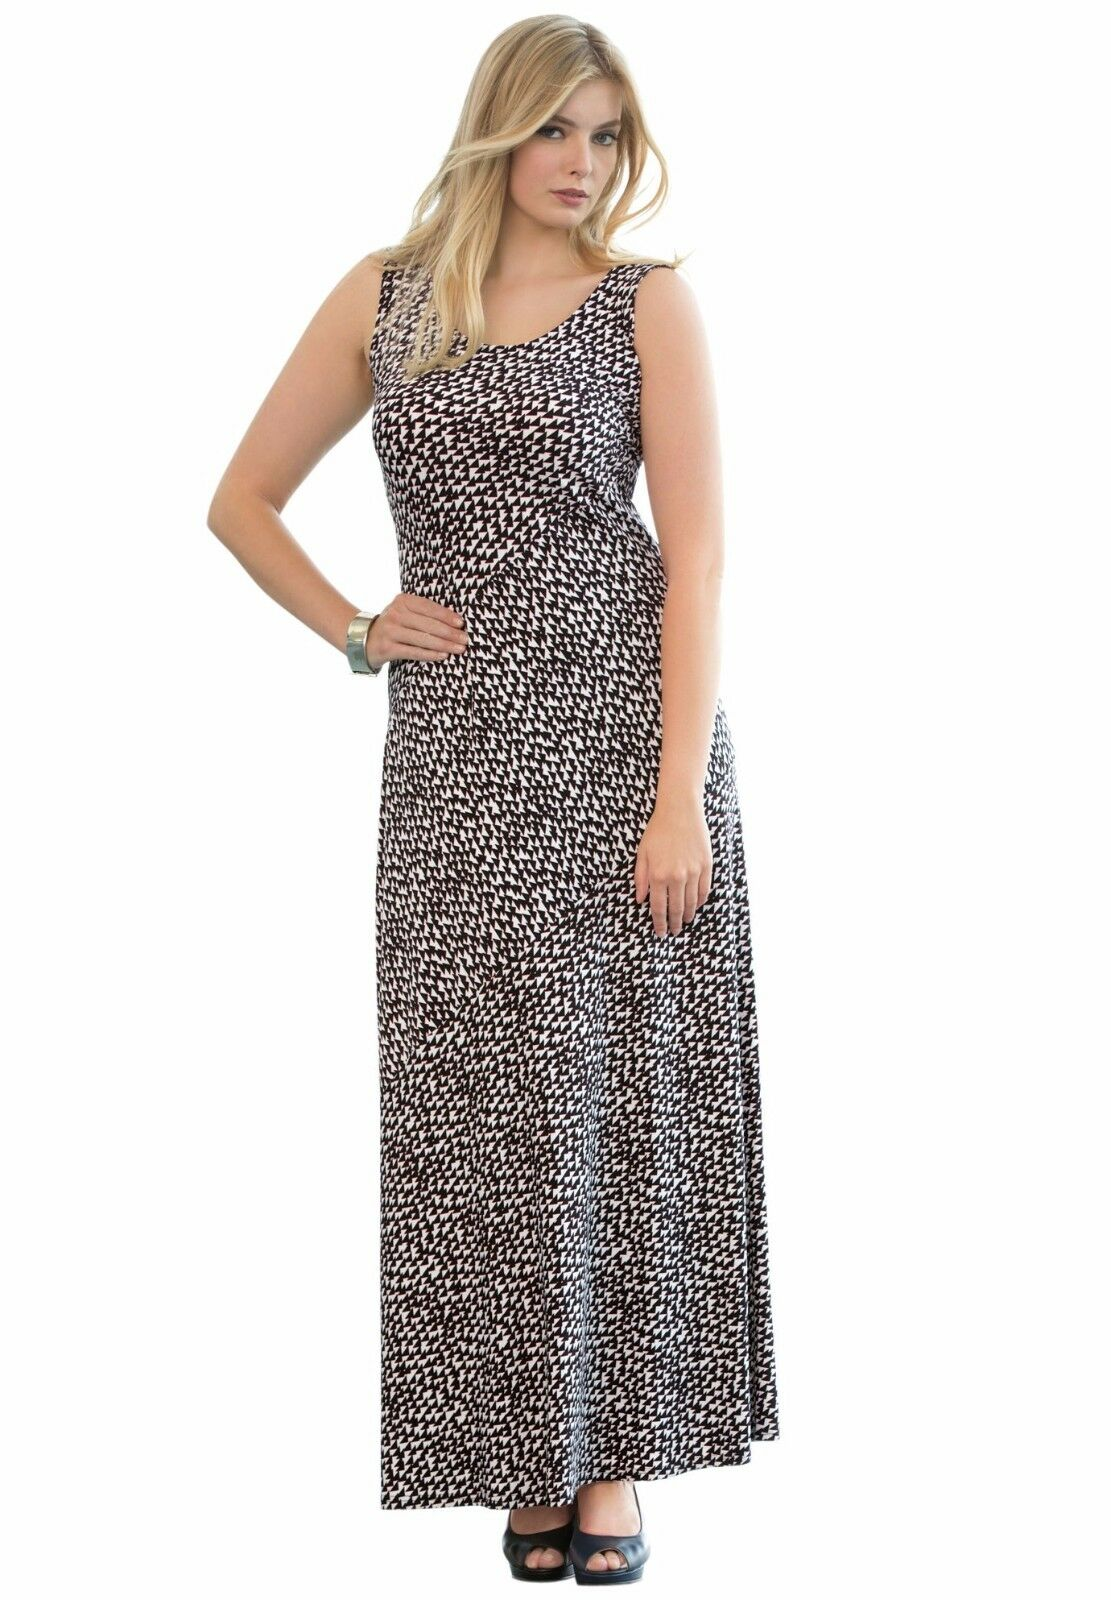 fa833446bf4 Jessica London Length Geo Print Maxi Tank Size 12 Dress Full ...